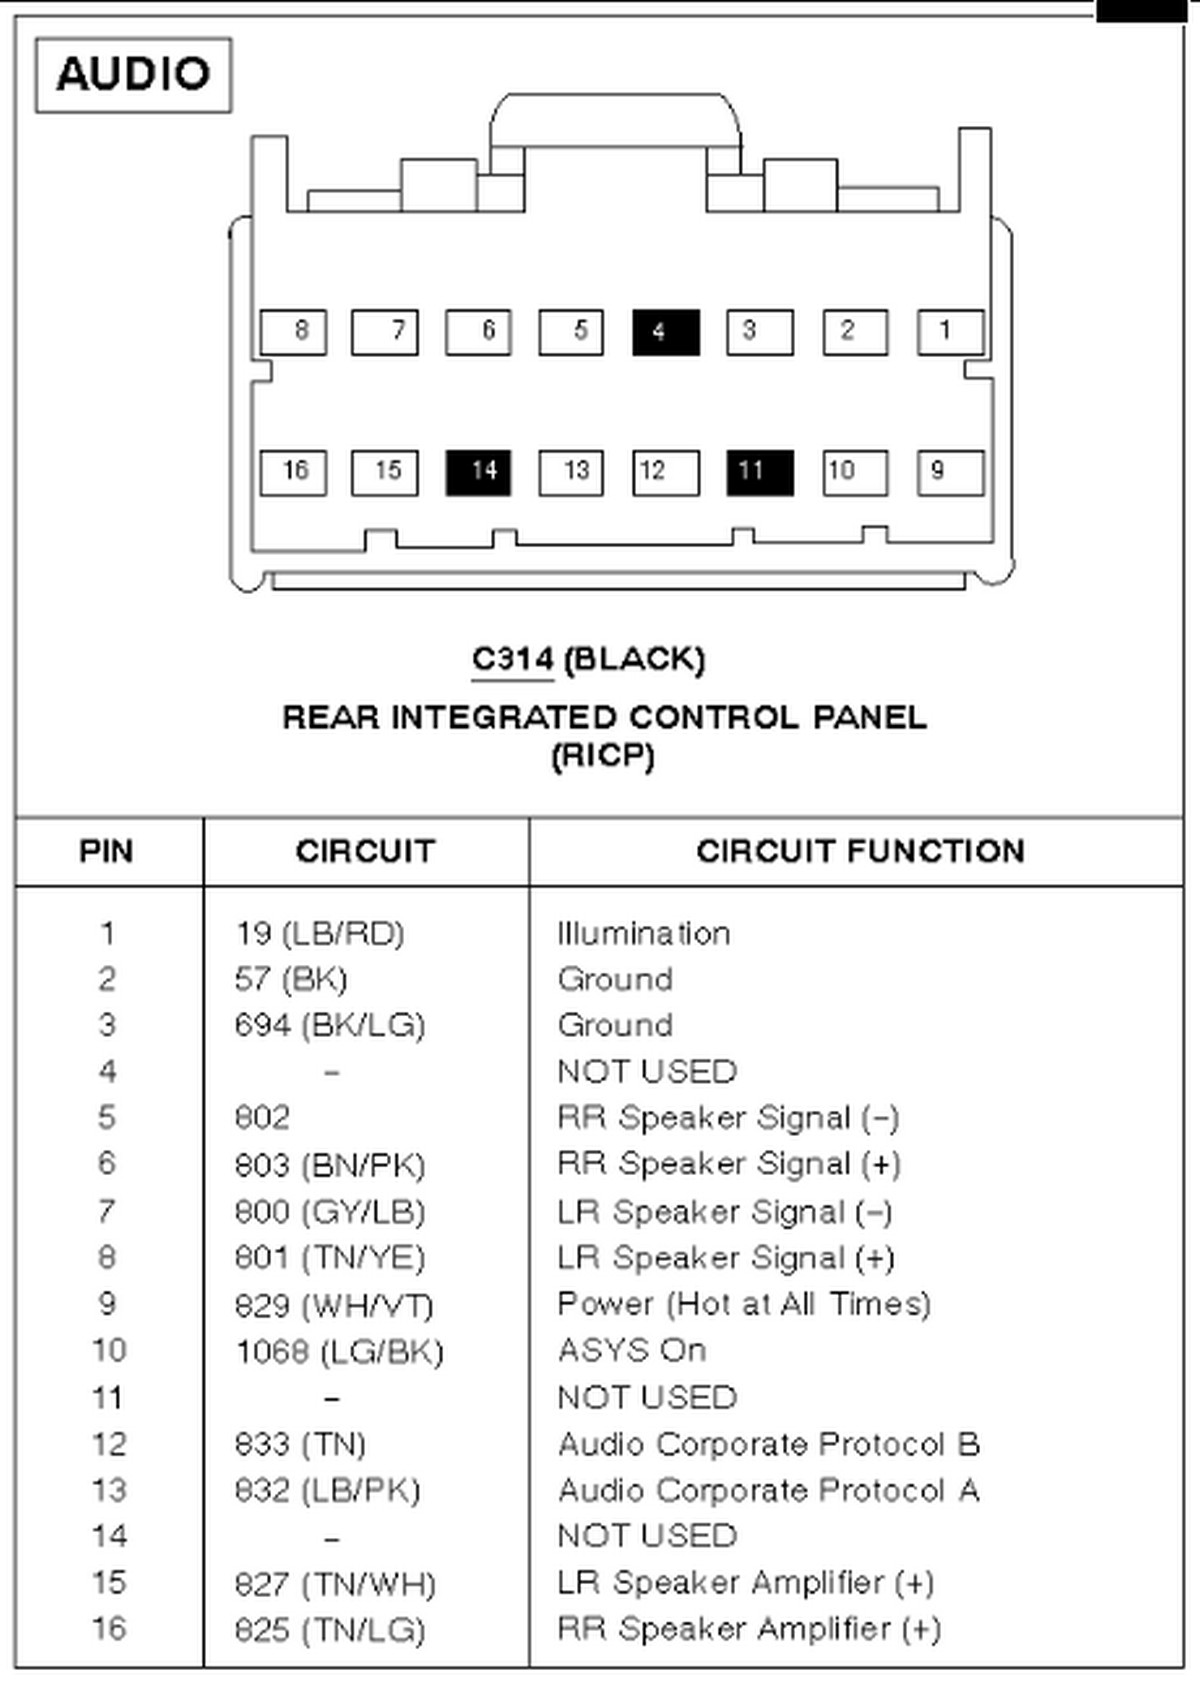 Ford Car Radio Stereo Audio Wiring Diagram Autoradio Connector Wire Mazda 626 Gf Expedition Eddie Bauer 2001